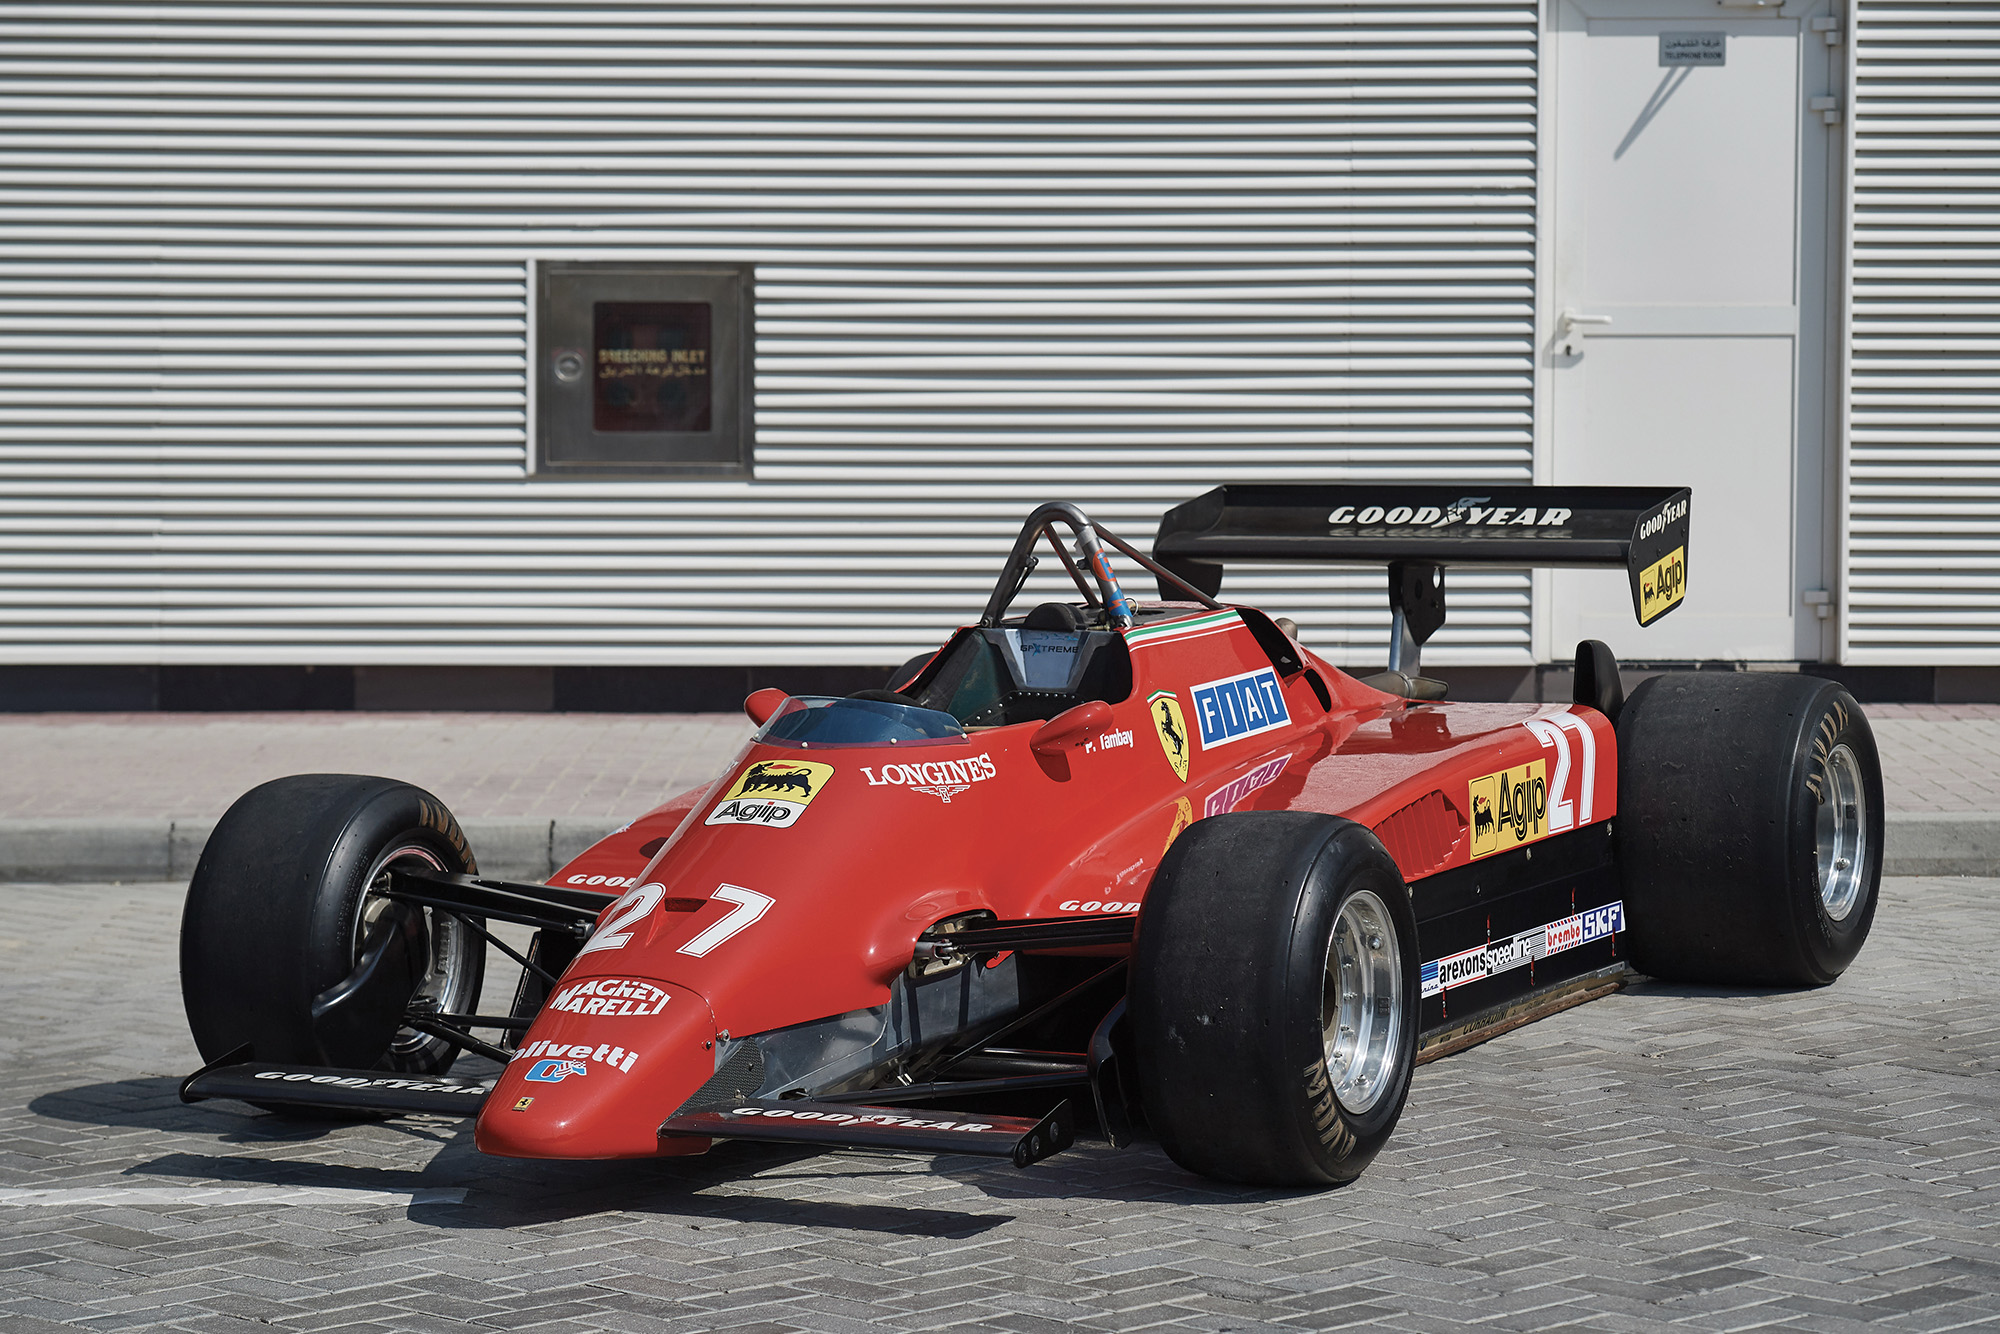 Front view of the 1982 German Grand Prix-winning Ferrari 126 C2